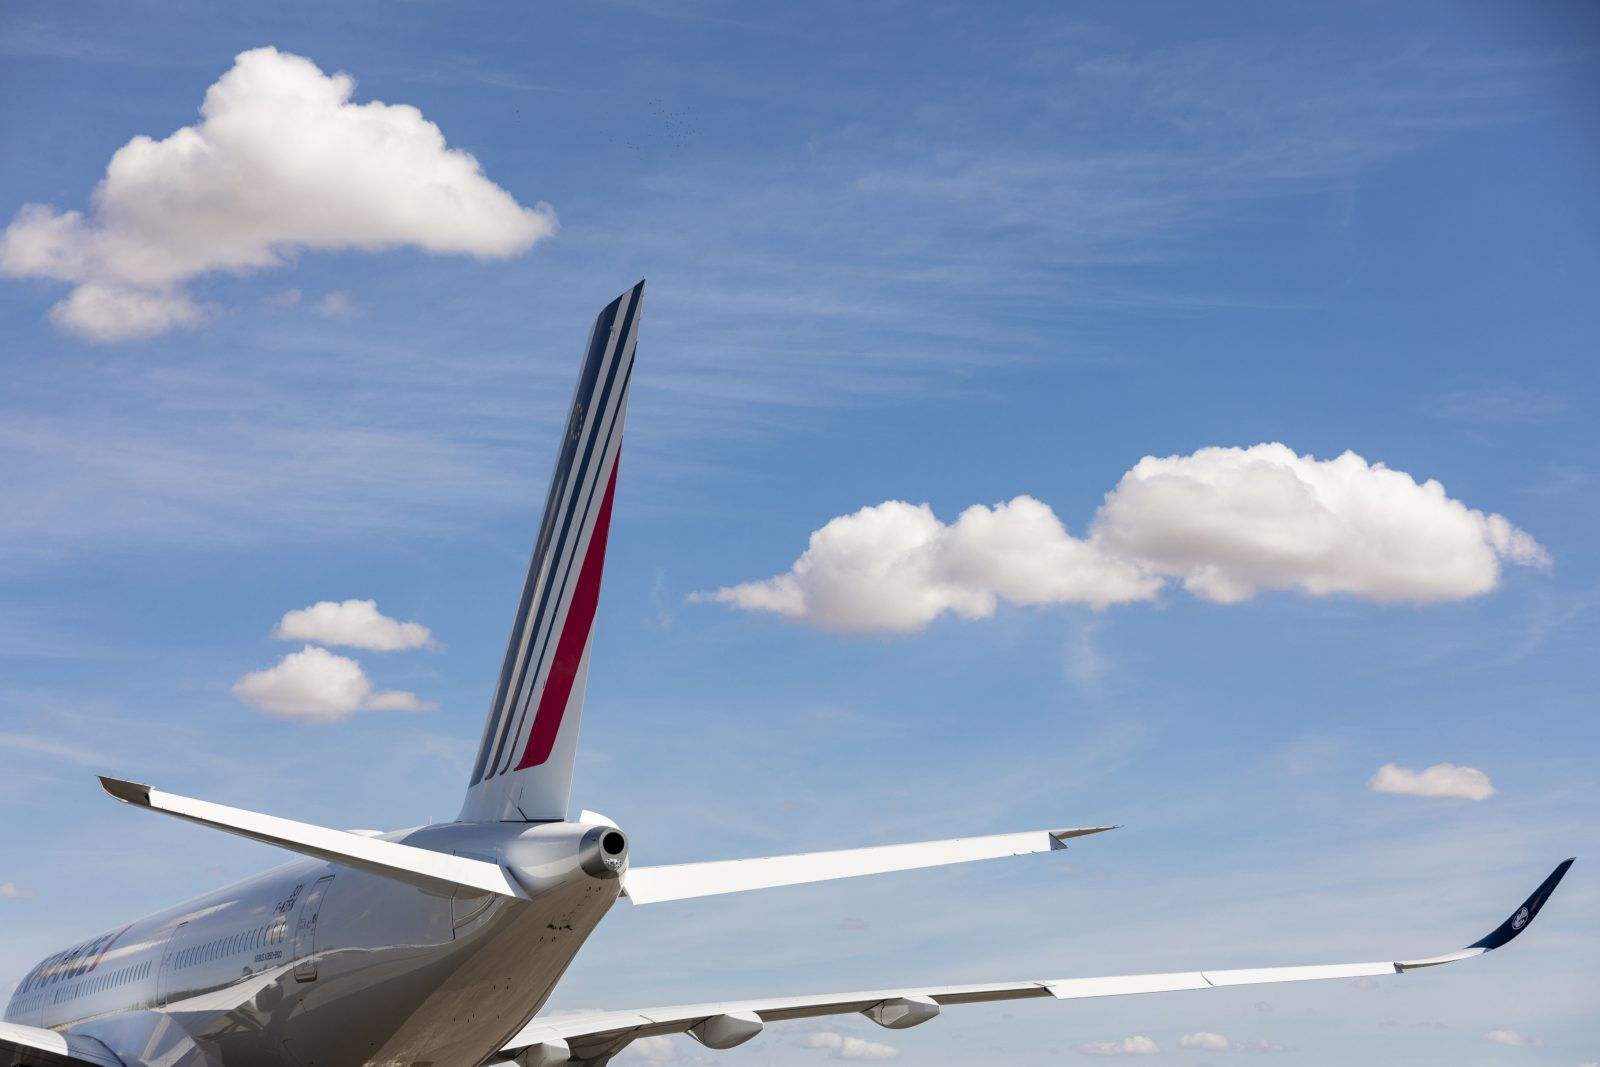 Air France to Carbon Offset All Domestic Flights and Cut CO2 Emissions in Half Within 10 Years